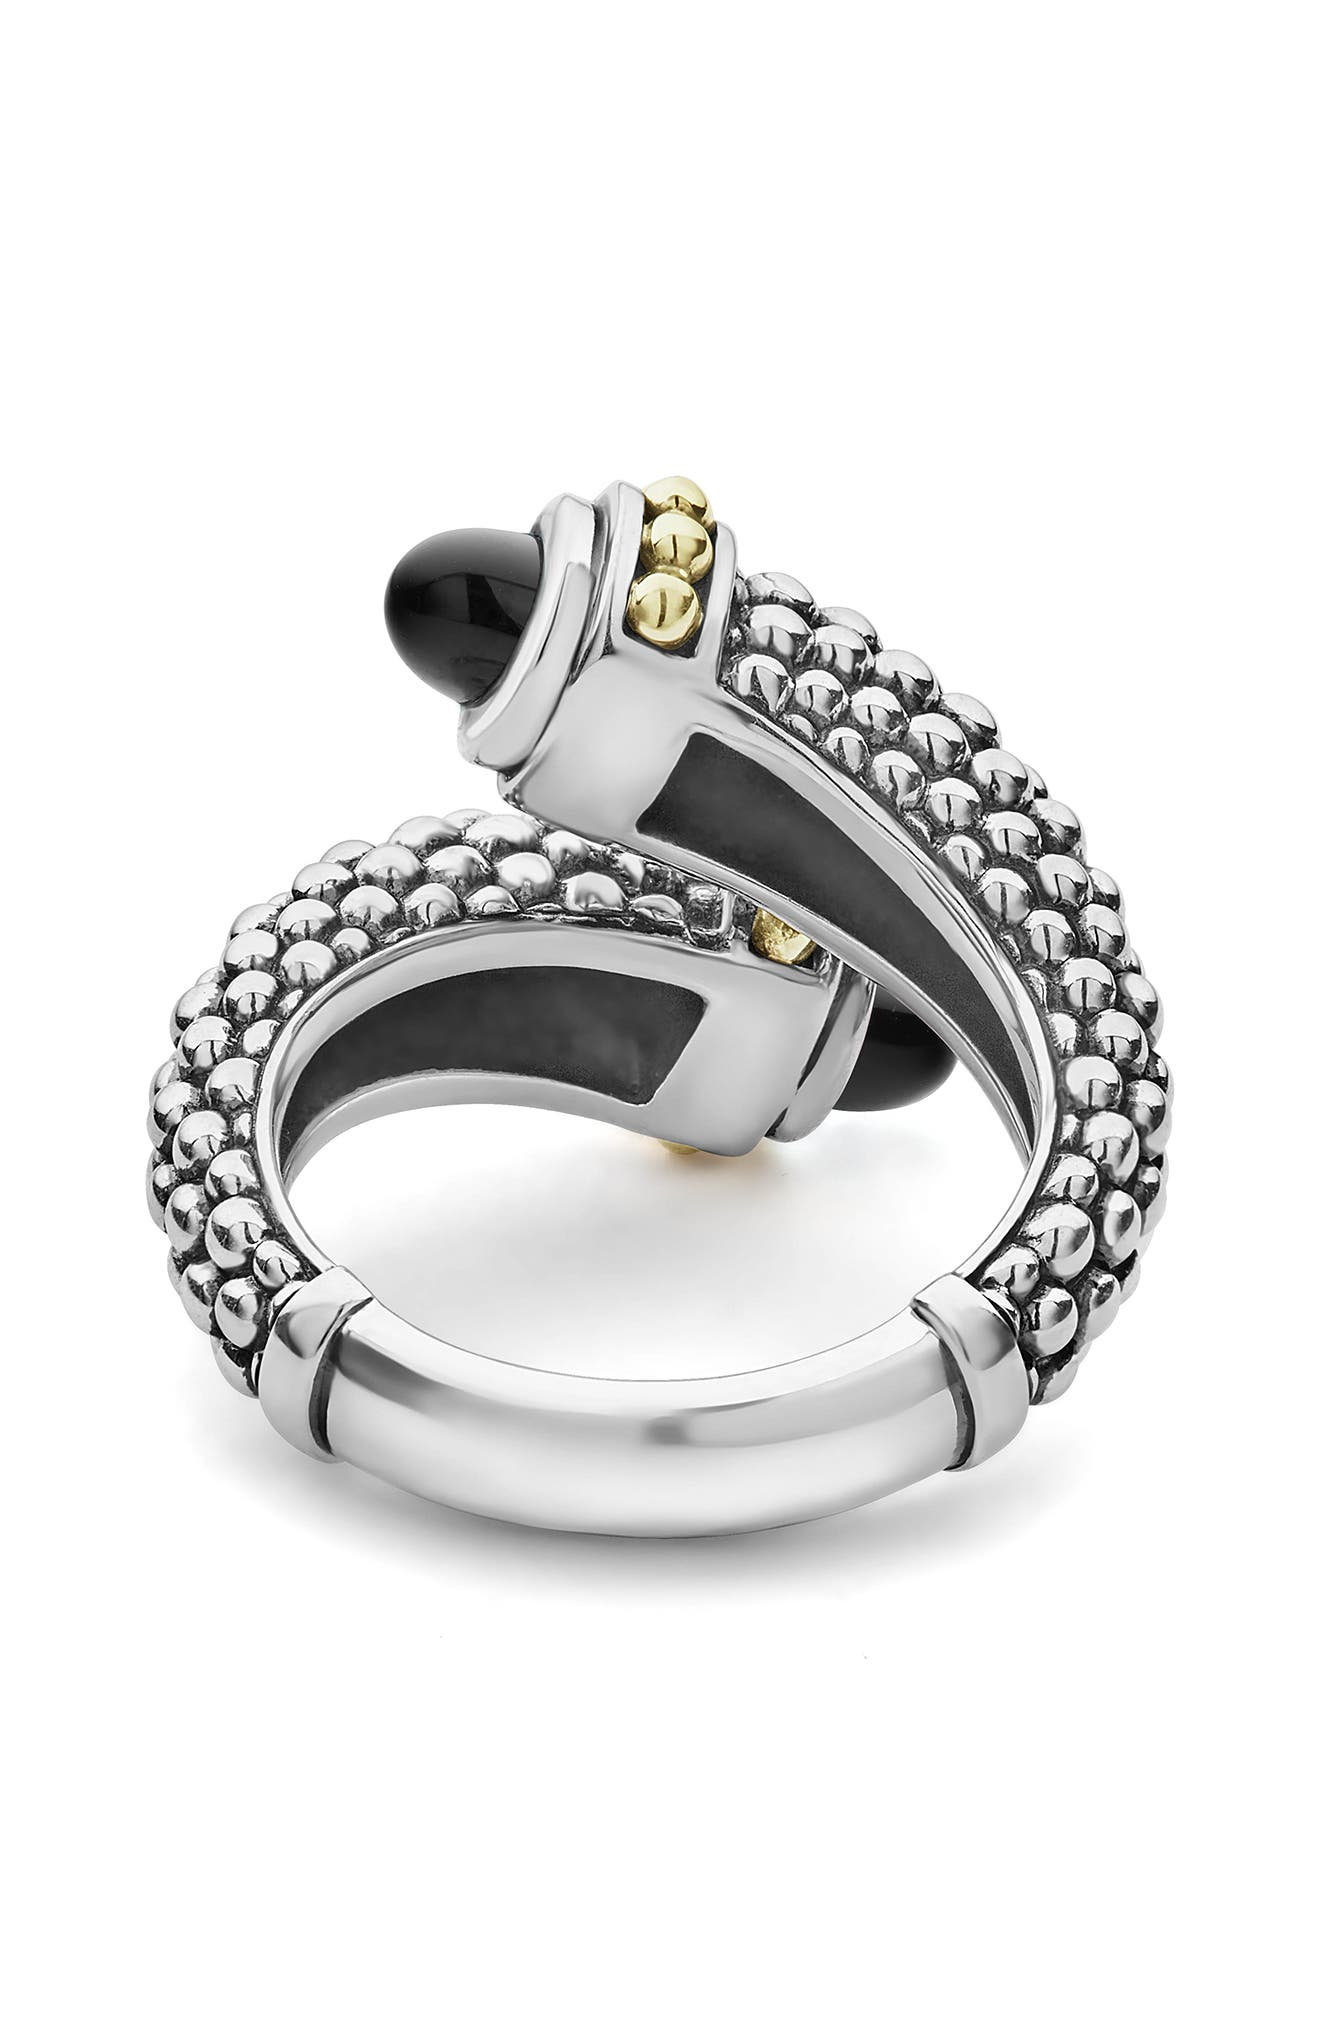 Signature Caviar Crossover Ring,                             Alternate thumbnail 4, color,                             SILVER/ BLACK ONYX